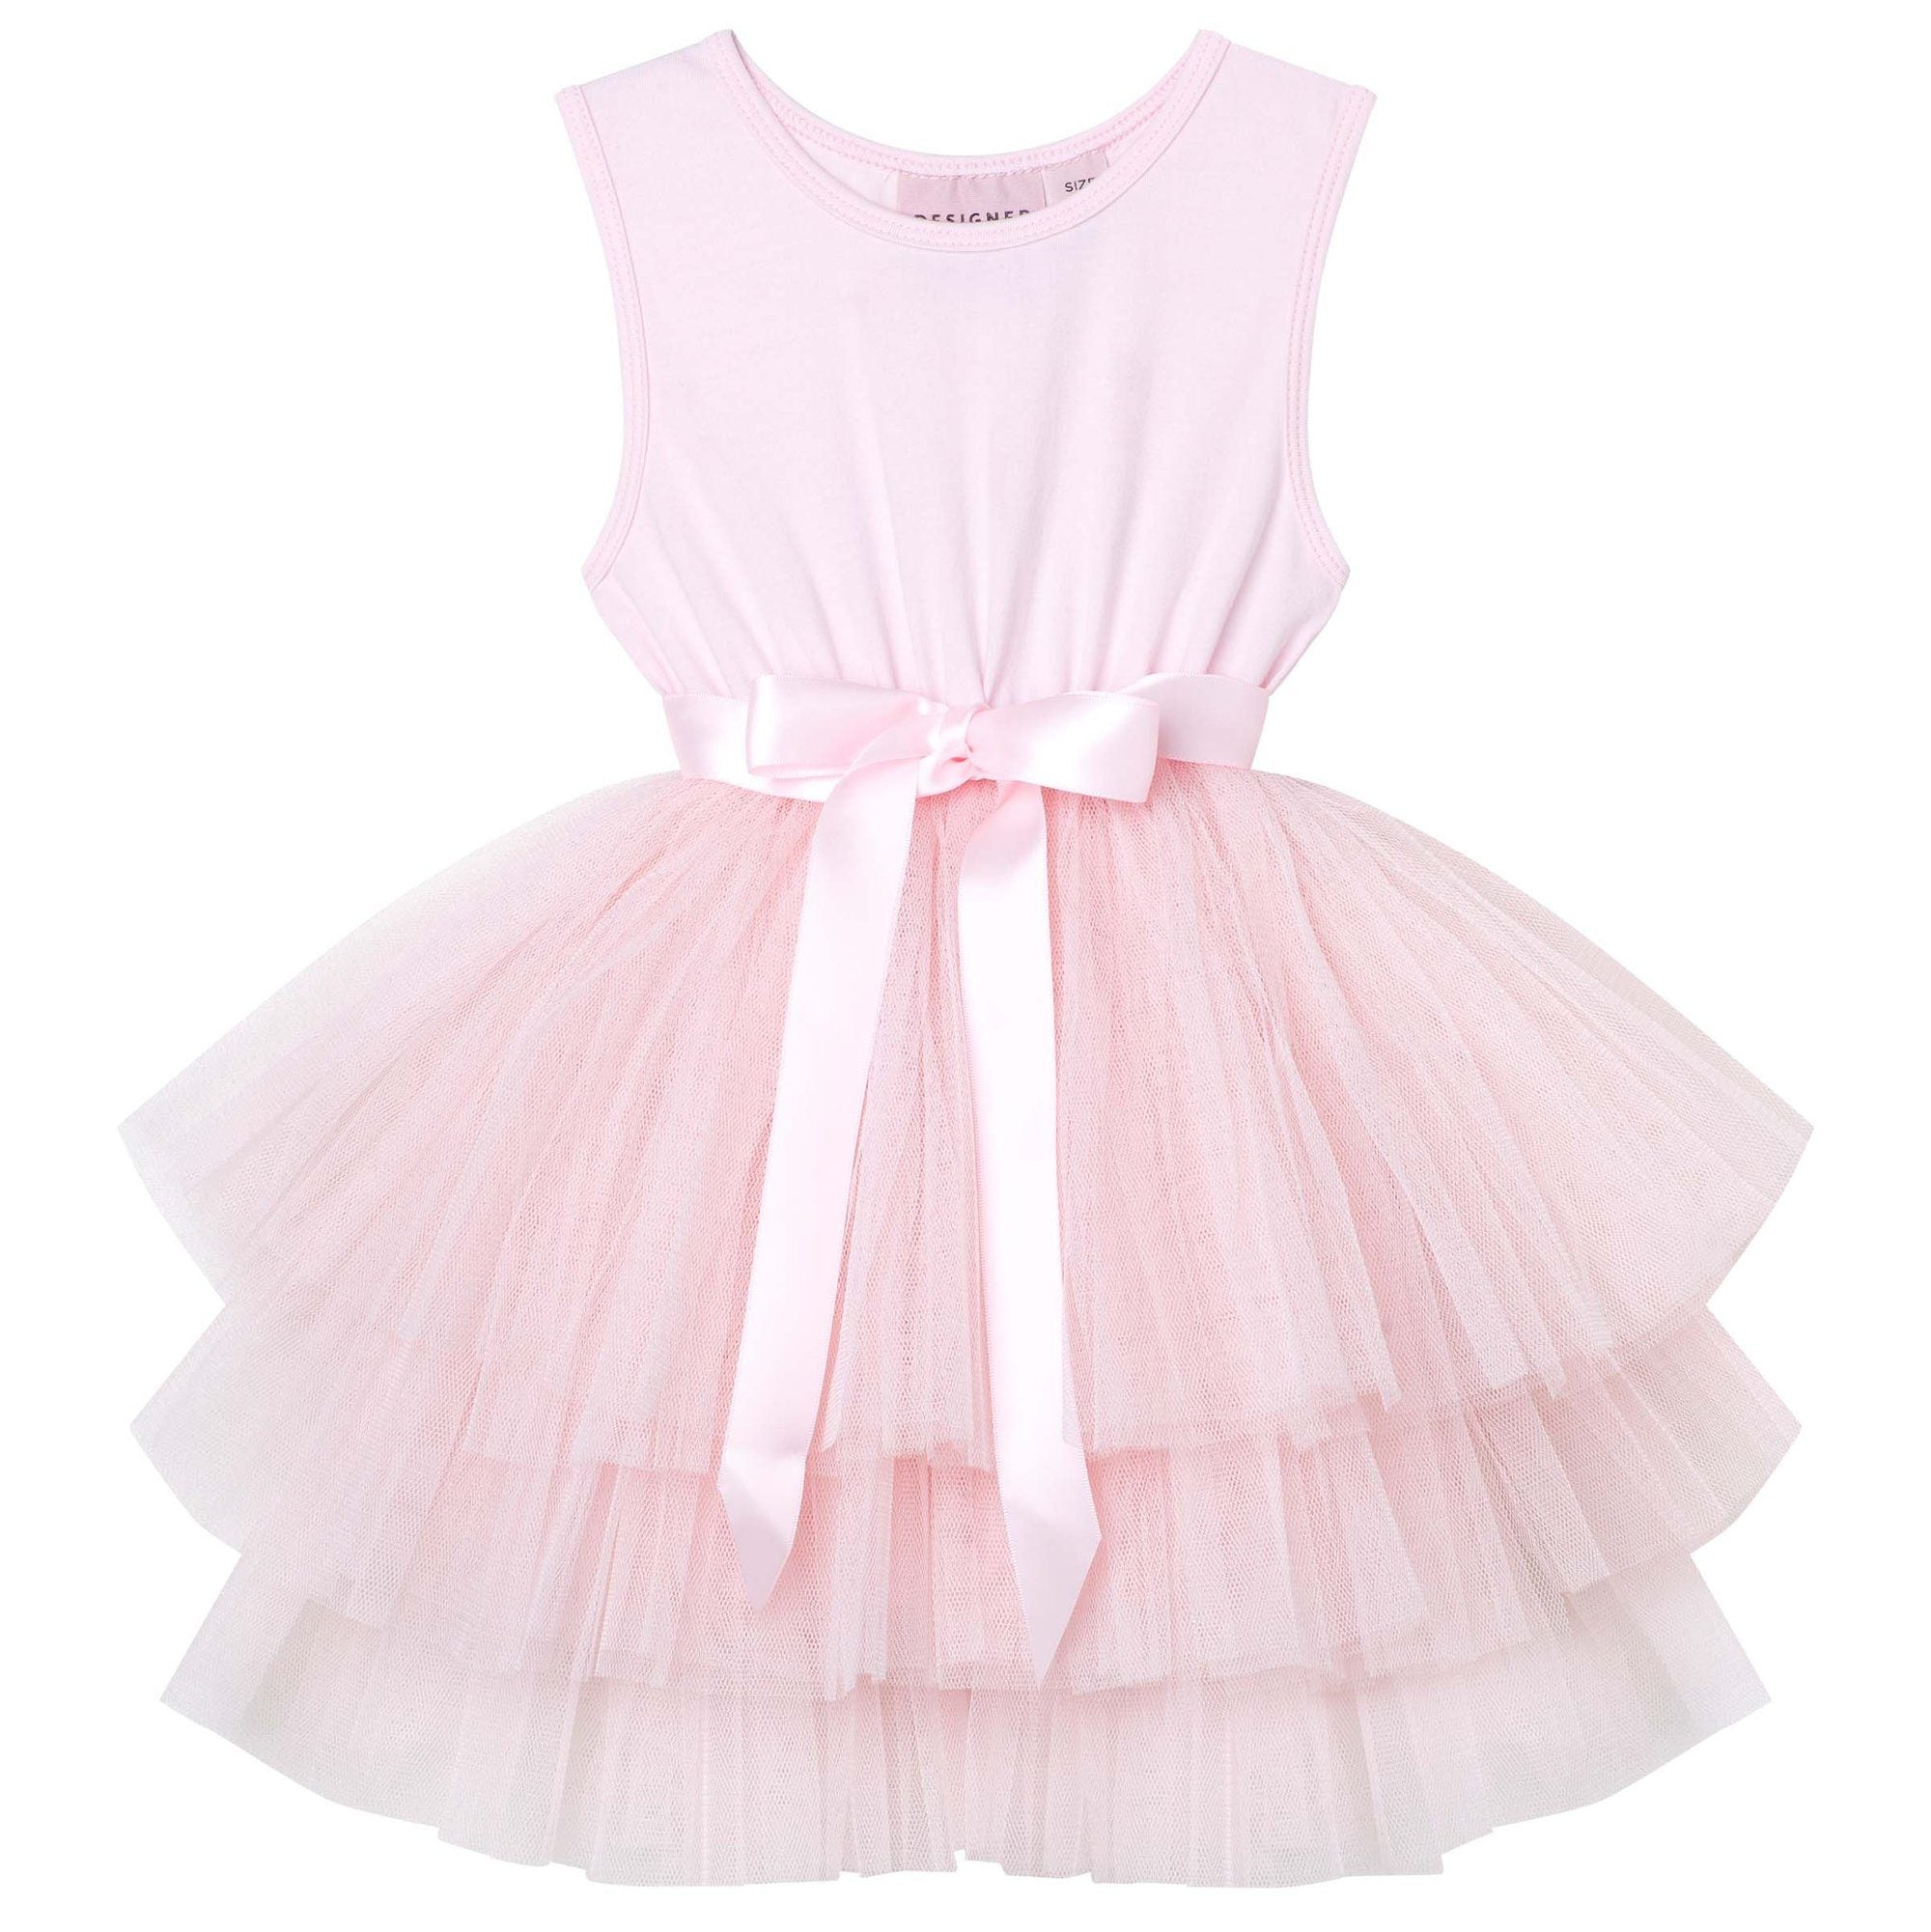 My First Tutu Dress (Pink)